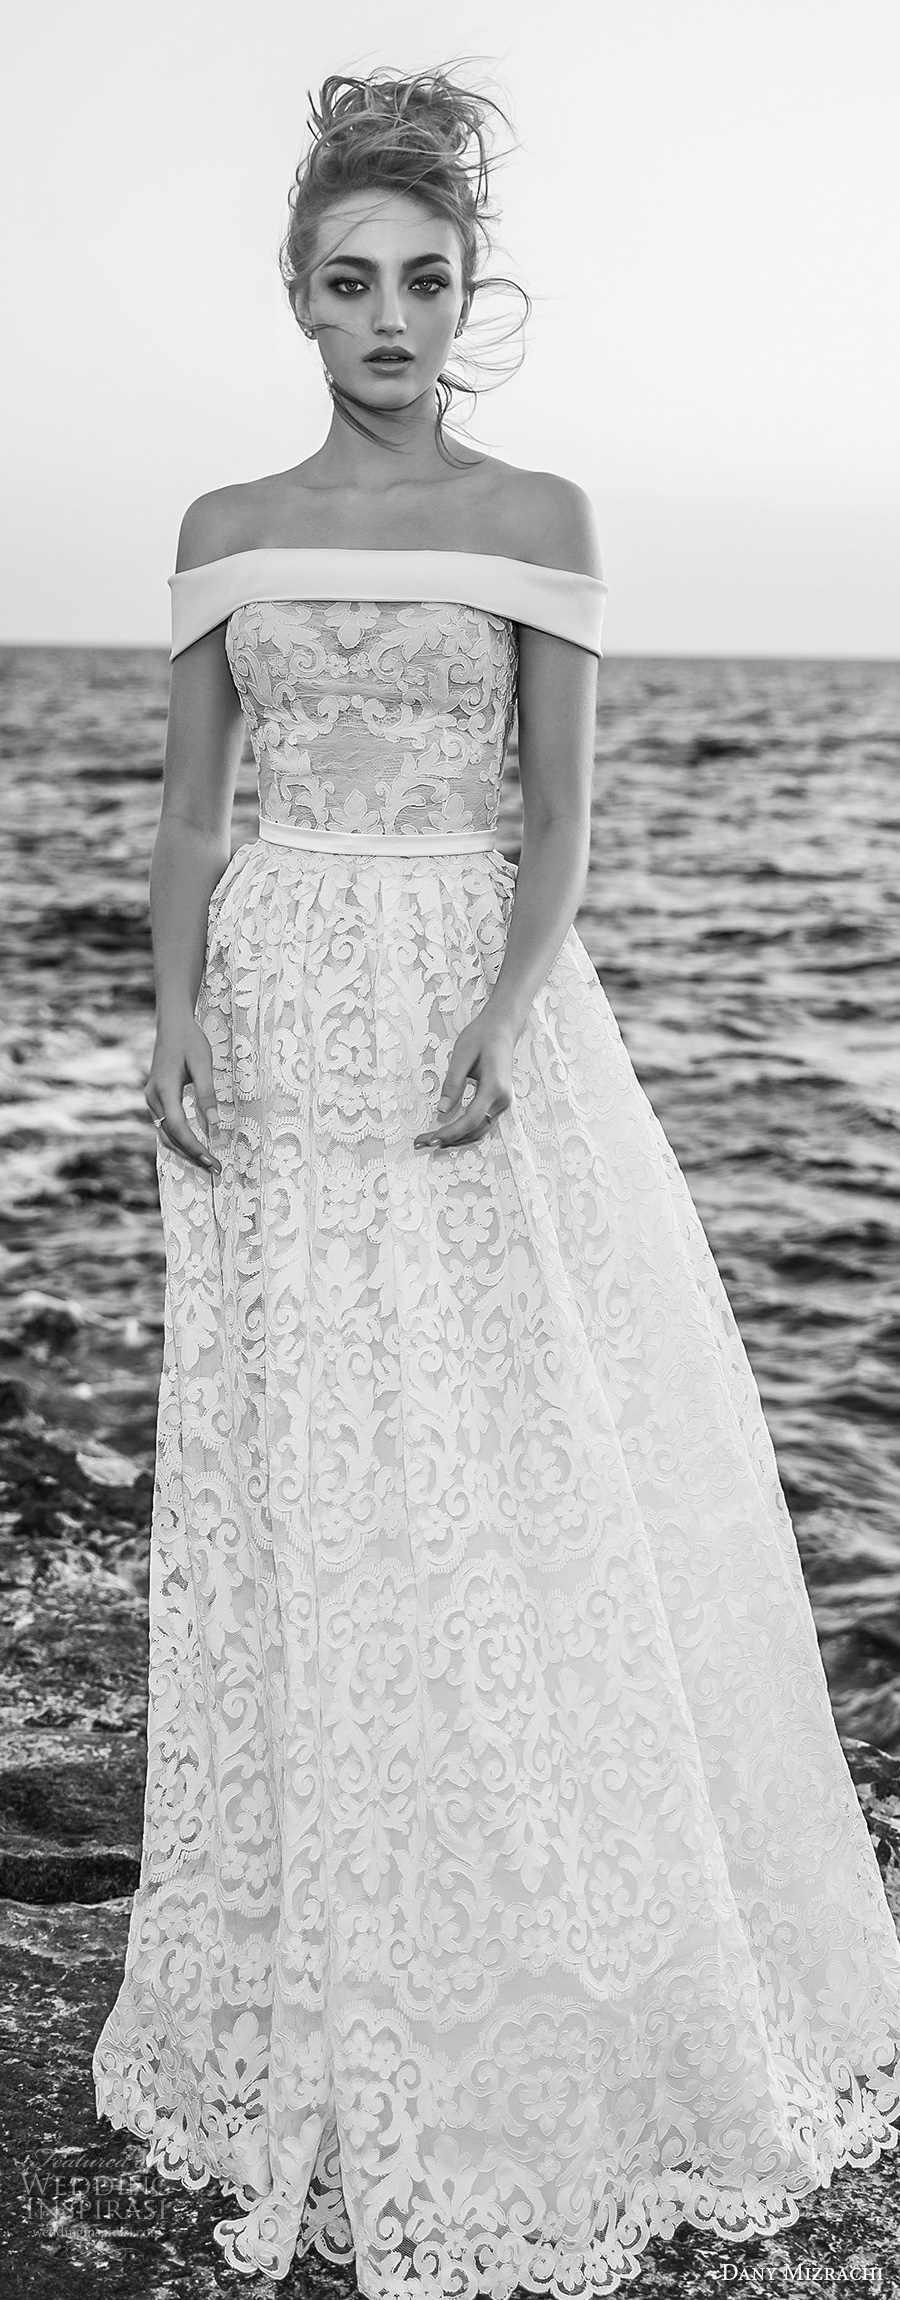 dany mizrachi 2018 bridal off the shoulder straight across neckline full embellishment romantic a  line wedding dress sweep train (15) mv